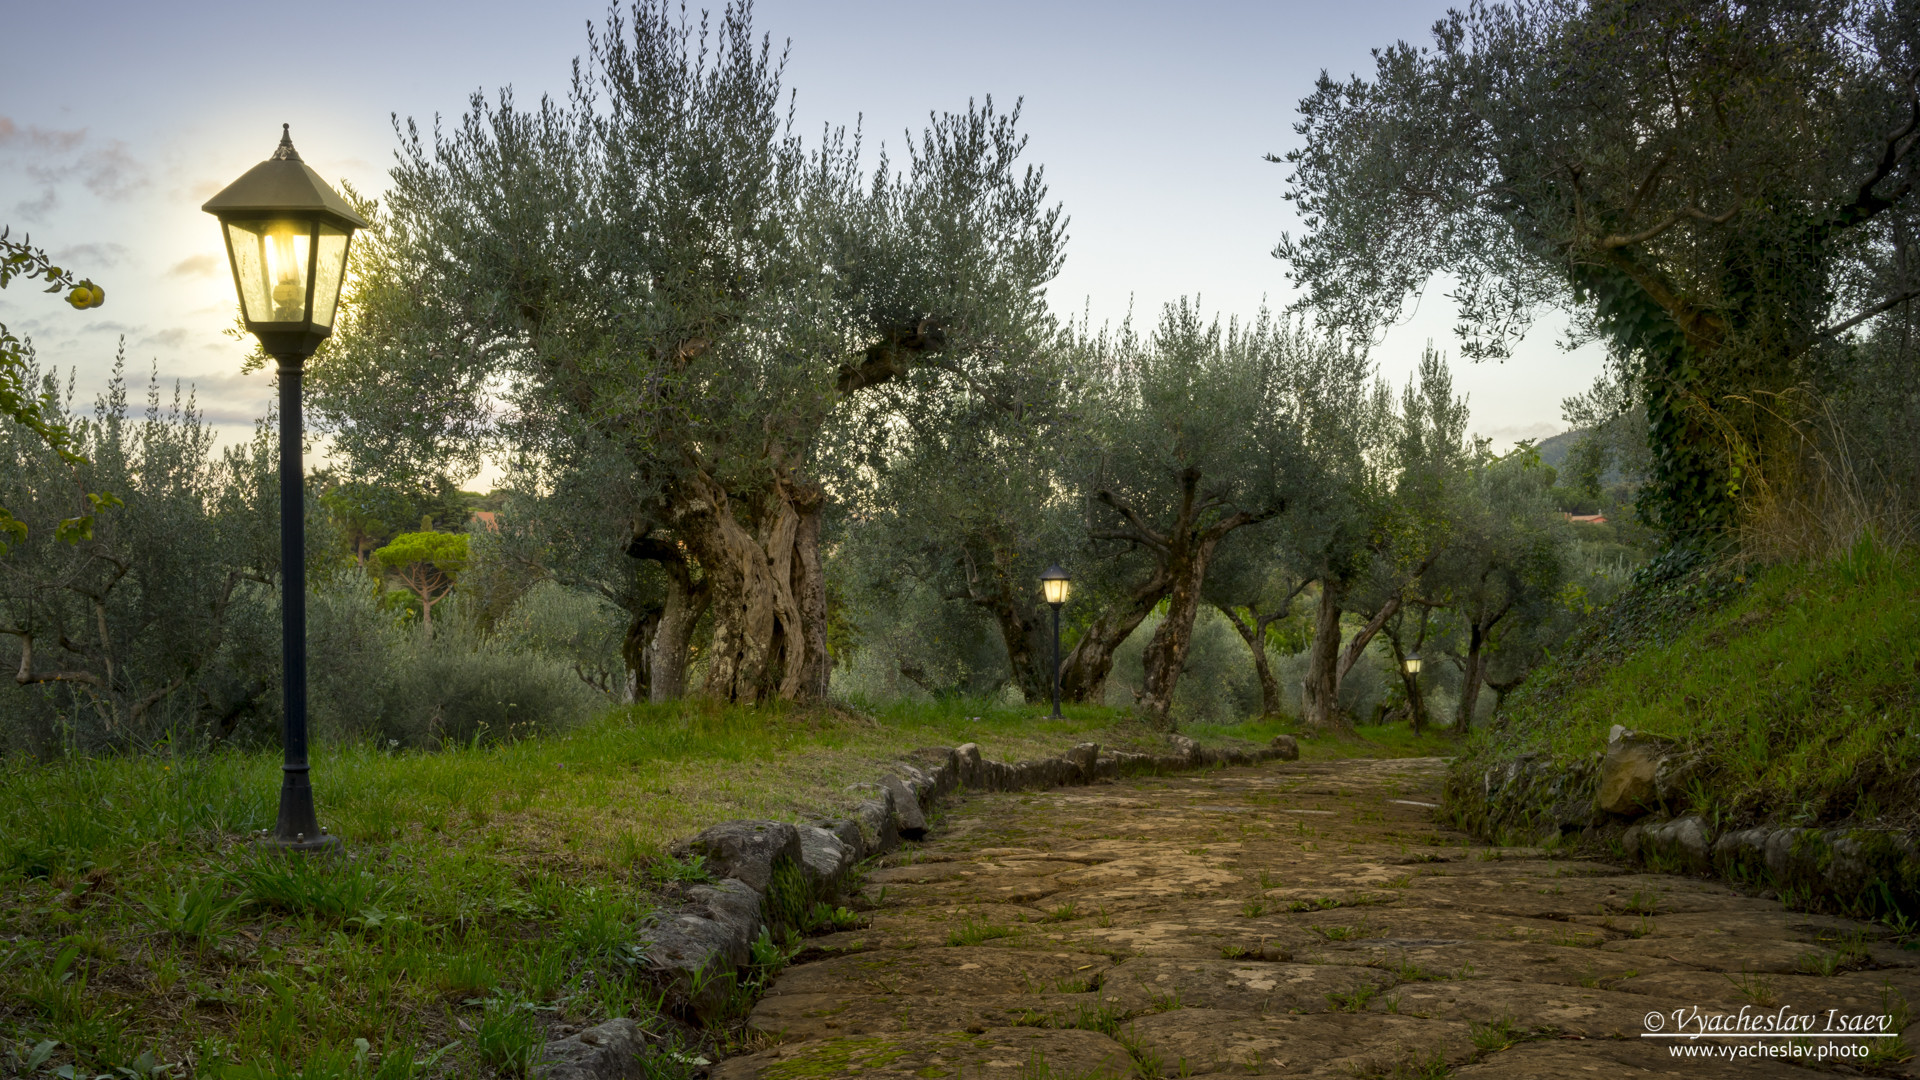 An ancient road in the olive garden by Vaycheslav Isaev. 2015.